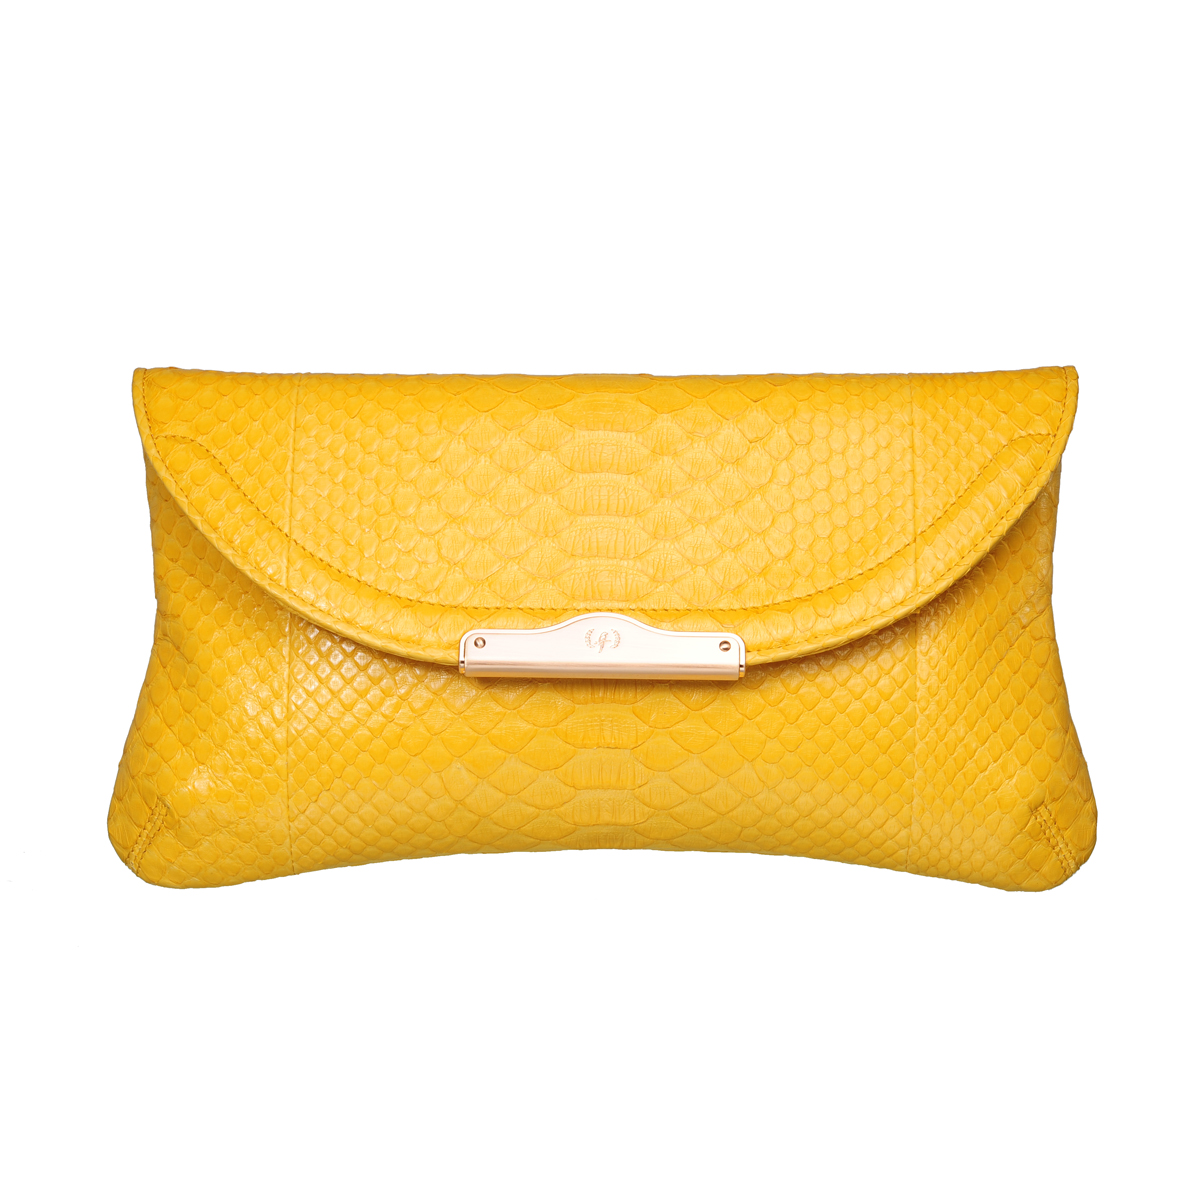 [CLUTCH] CHLOE (REAL PYTHON / YELLOW)